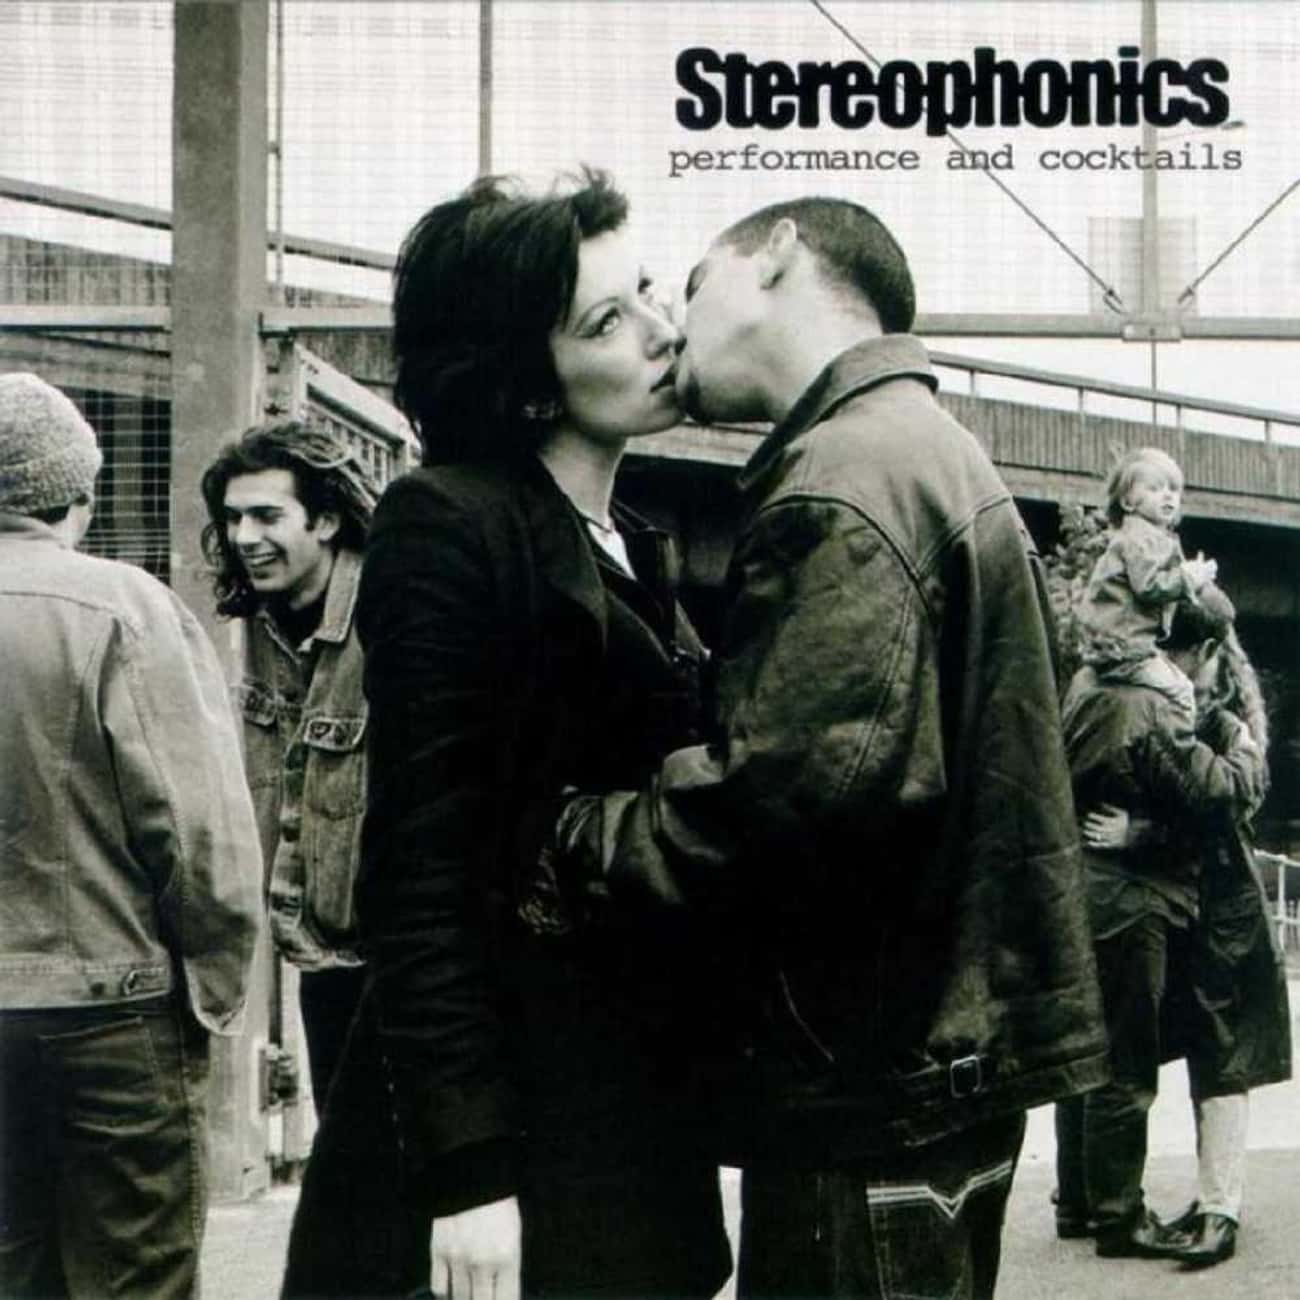 Performance and Cocktails is listed (or ranked) 1 on the list The Best Stereophonics Albums of All-Time